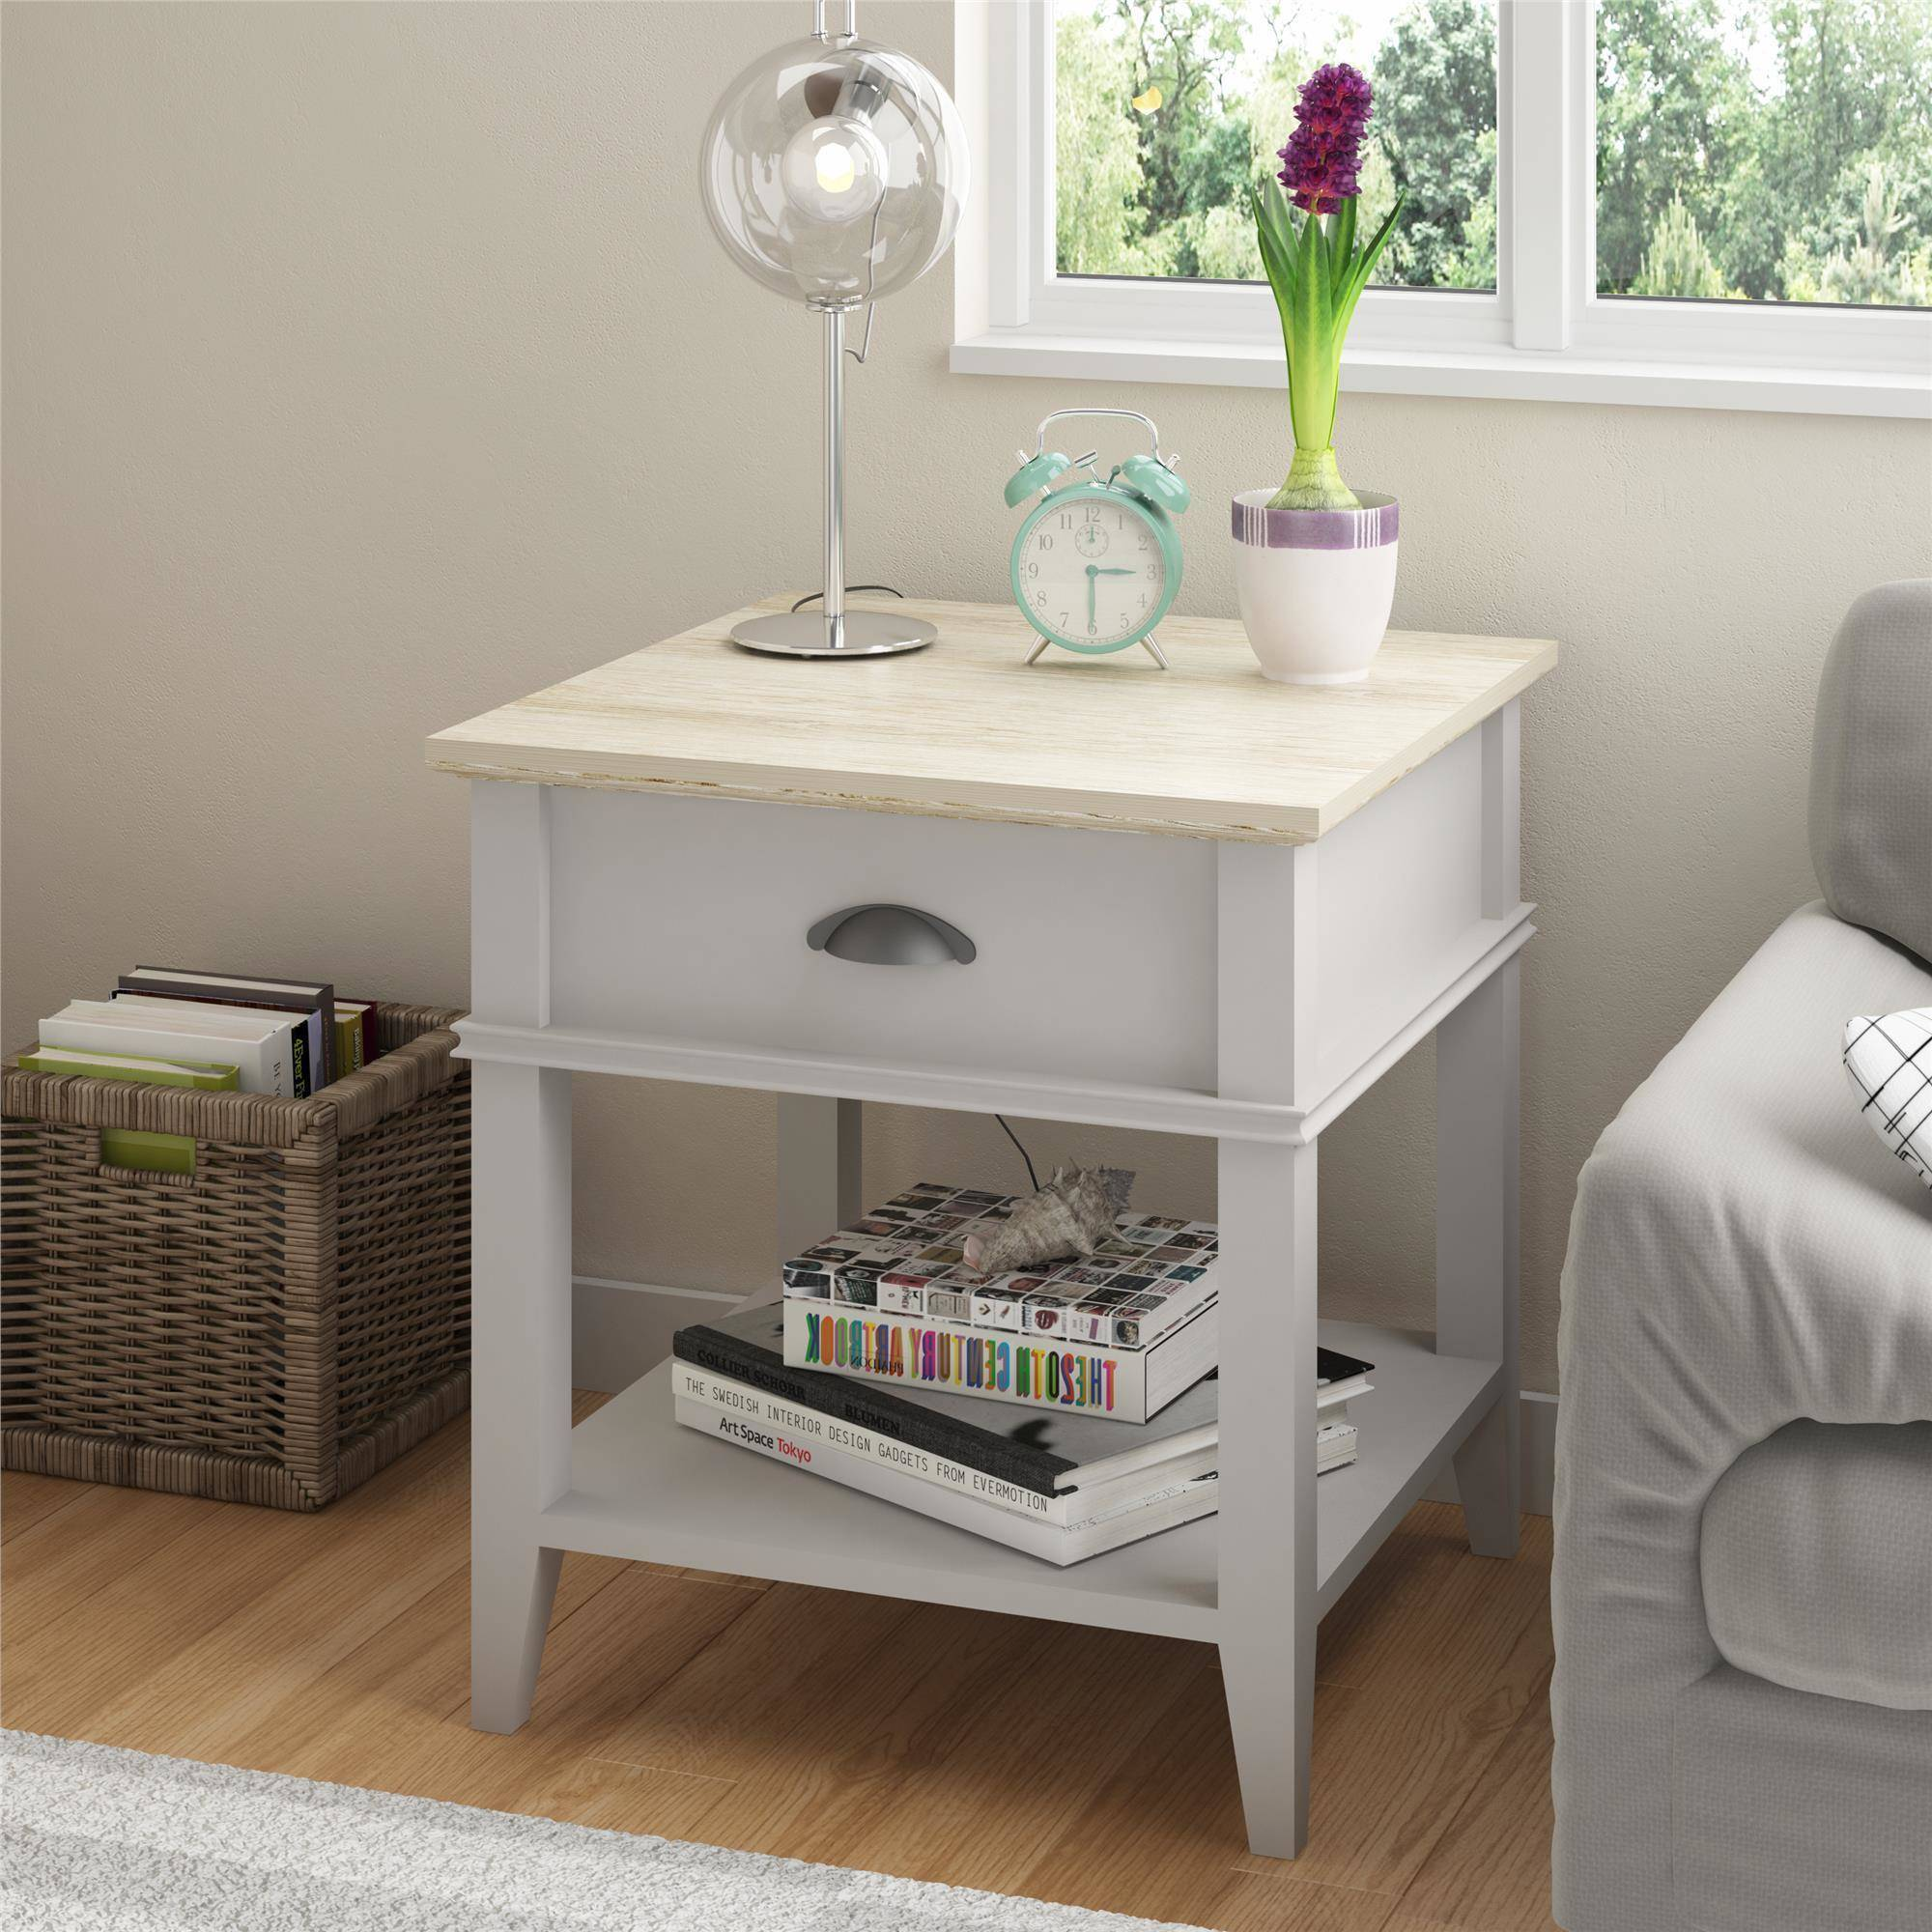 Ameriwood Home Newport Accent Table With Drawer, Light Gray/Brown    Walmart.com